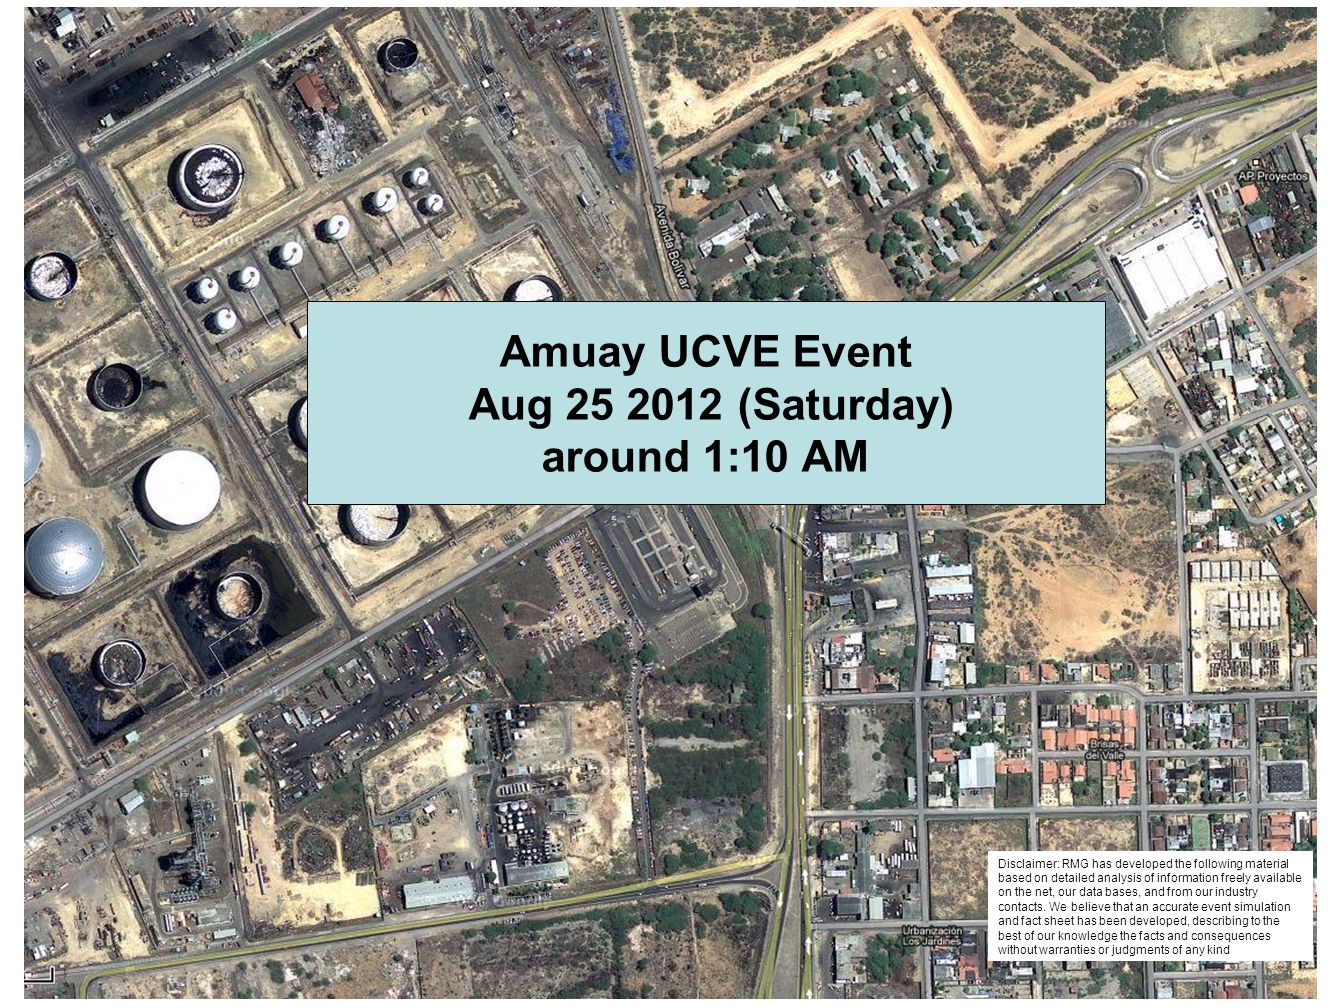 Amuay UCVE Event Aug 25 2012 (Saturday) around 1:10 AM Disclaimer: RMG has developed the following material based on detailed analysis of information